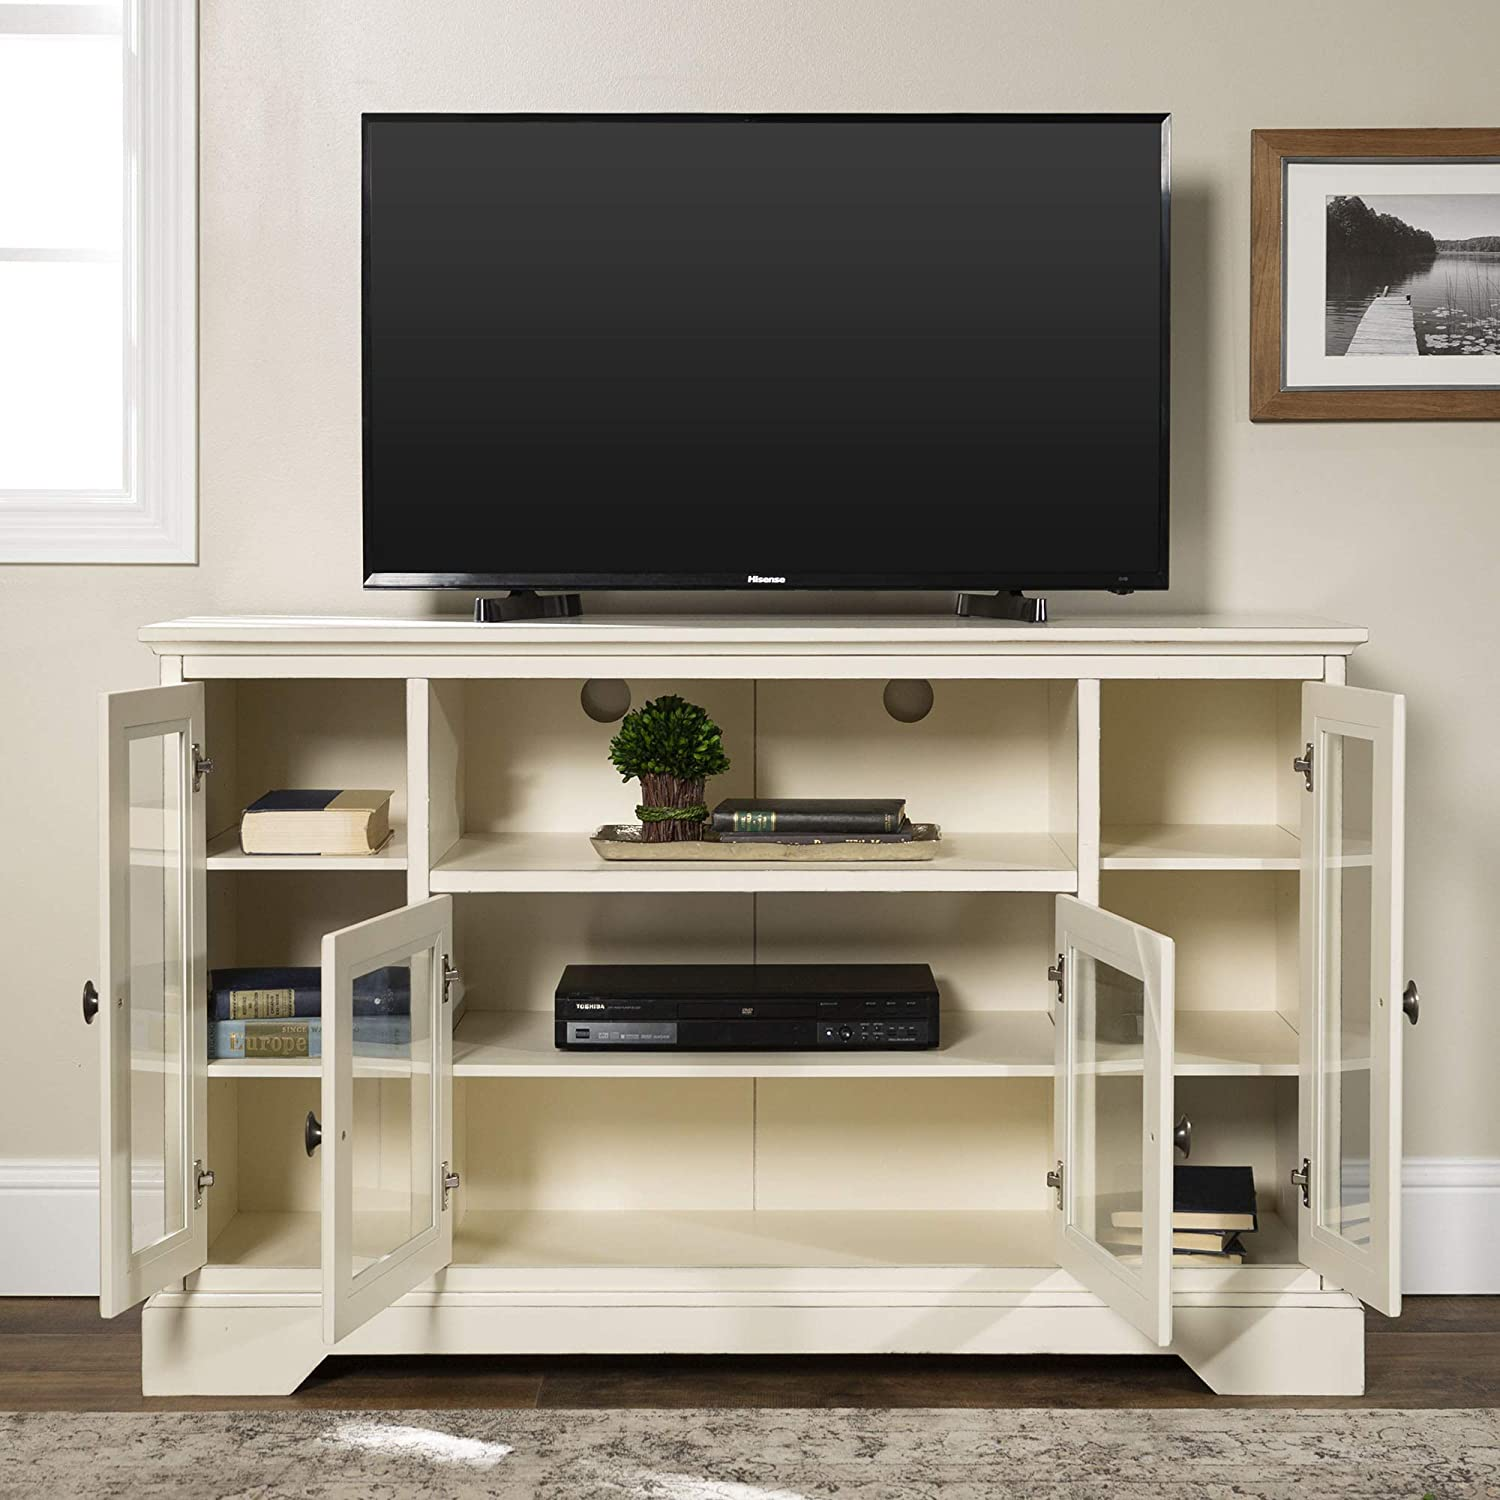 Home Accent Furnishings Romeo 52 Inch Wide Highboy Television Stand in Antique White